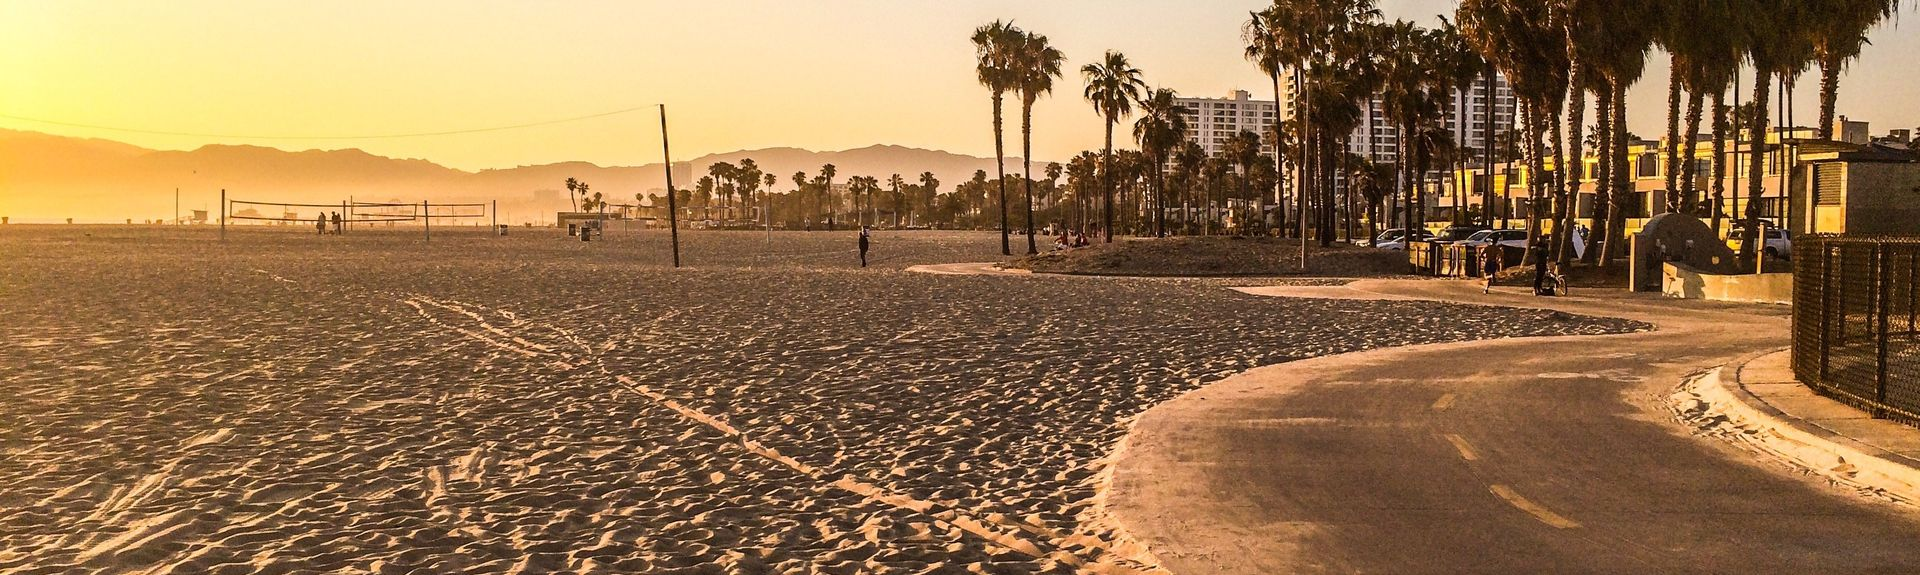 Venice Beach, Los Angeles, California, United States